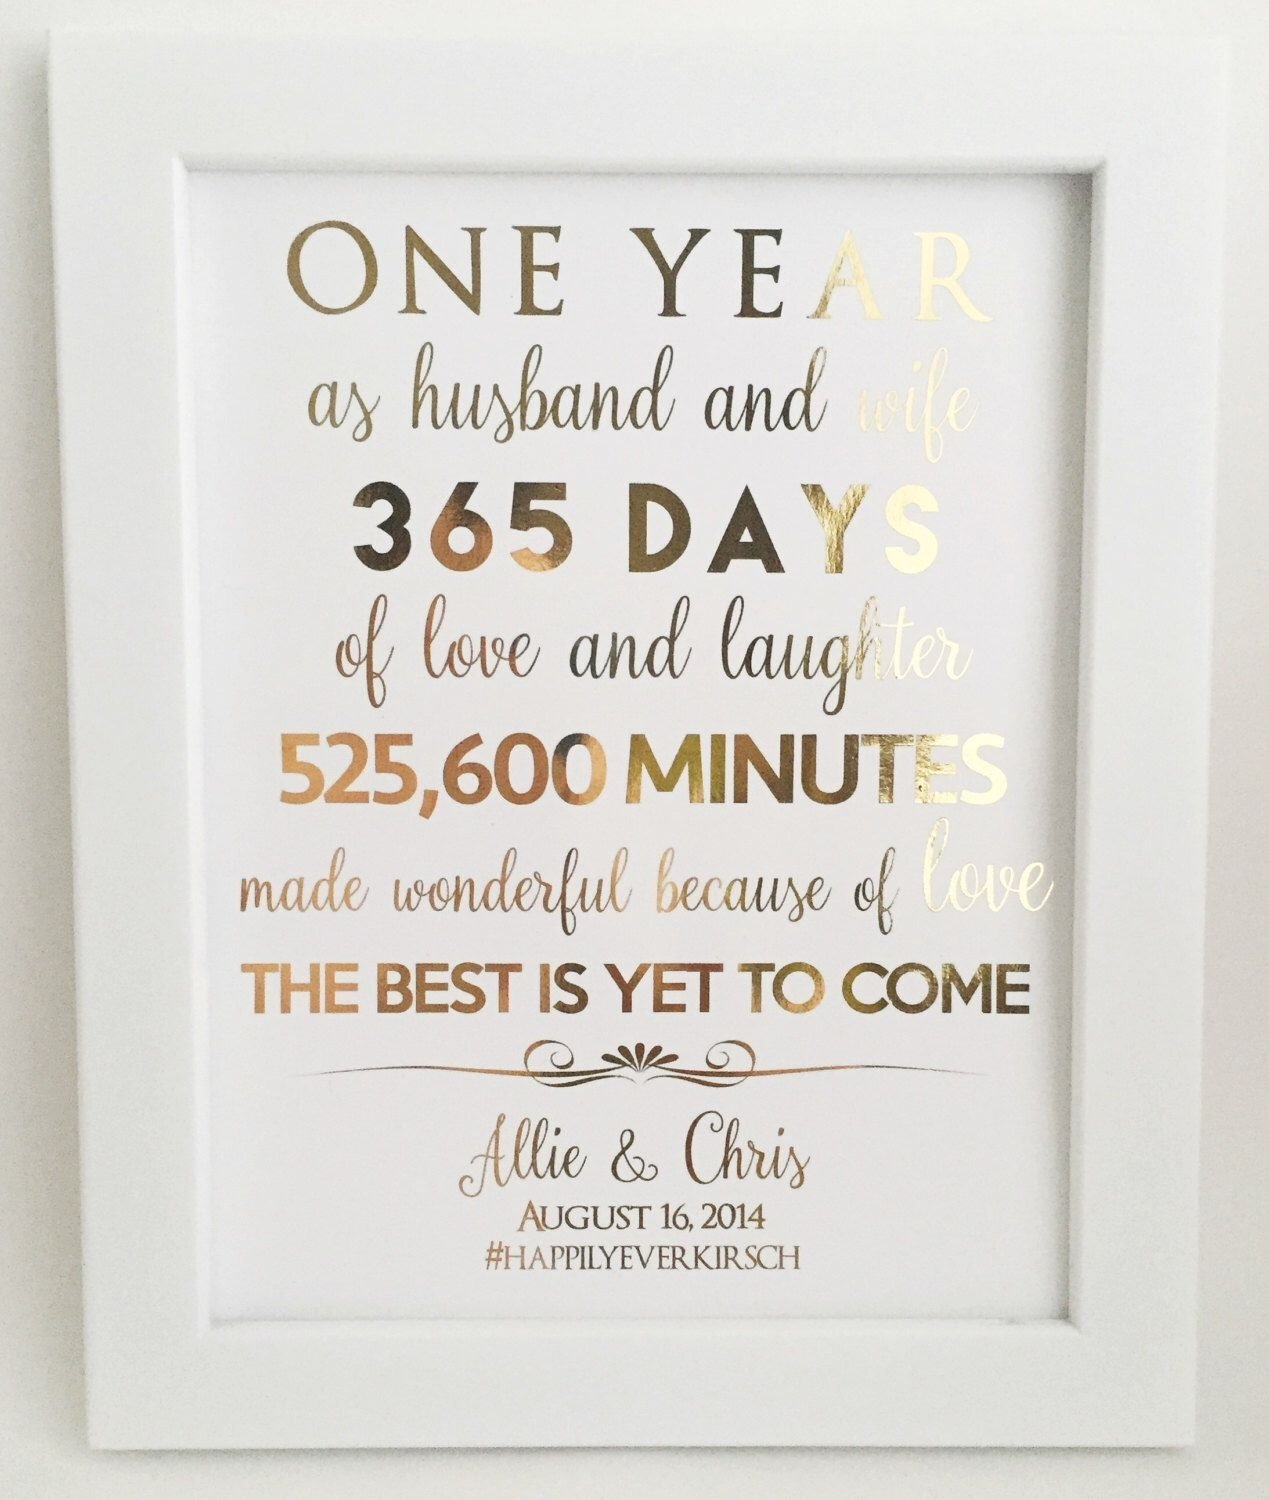 10 Trendy One Year Anniversary Ideas For Wife first 1st anniversary gift anniversary gift for husband or wife 1 2021